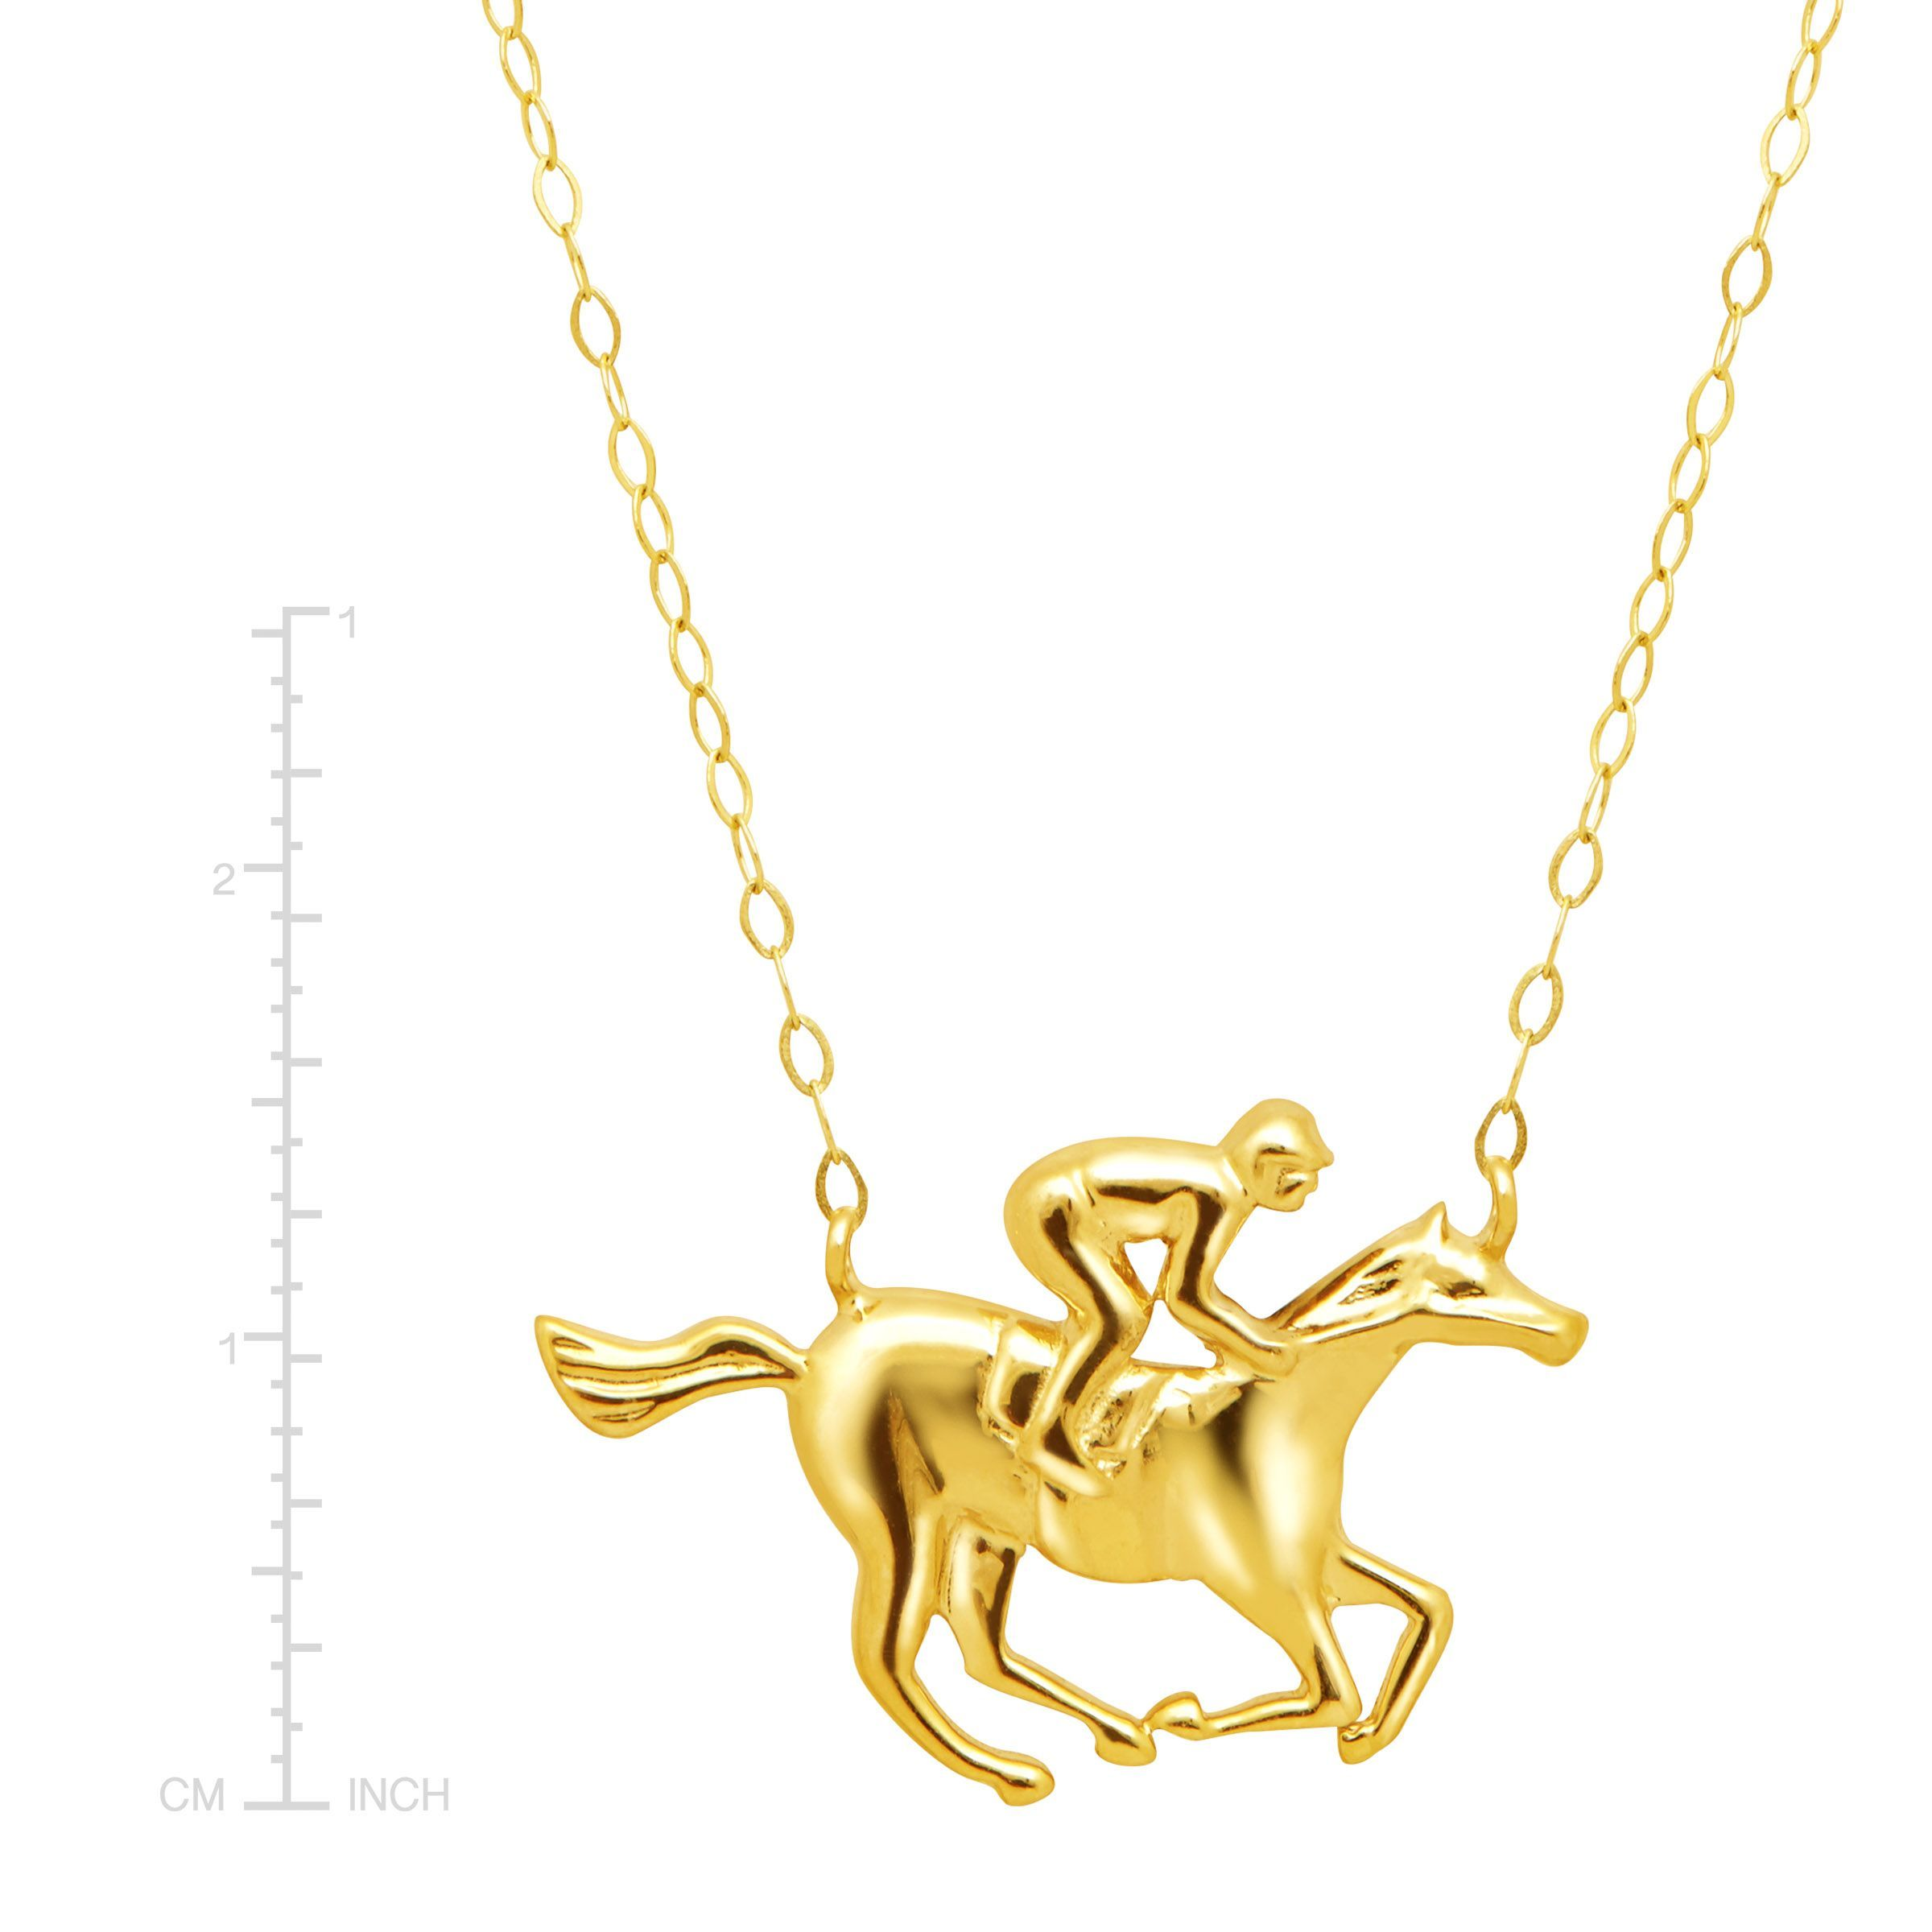 is equestrian horse loriece designs necklace necklaces from new by angled head high pendants and polished